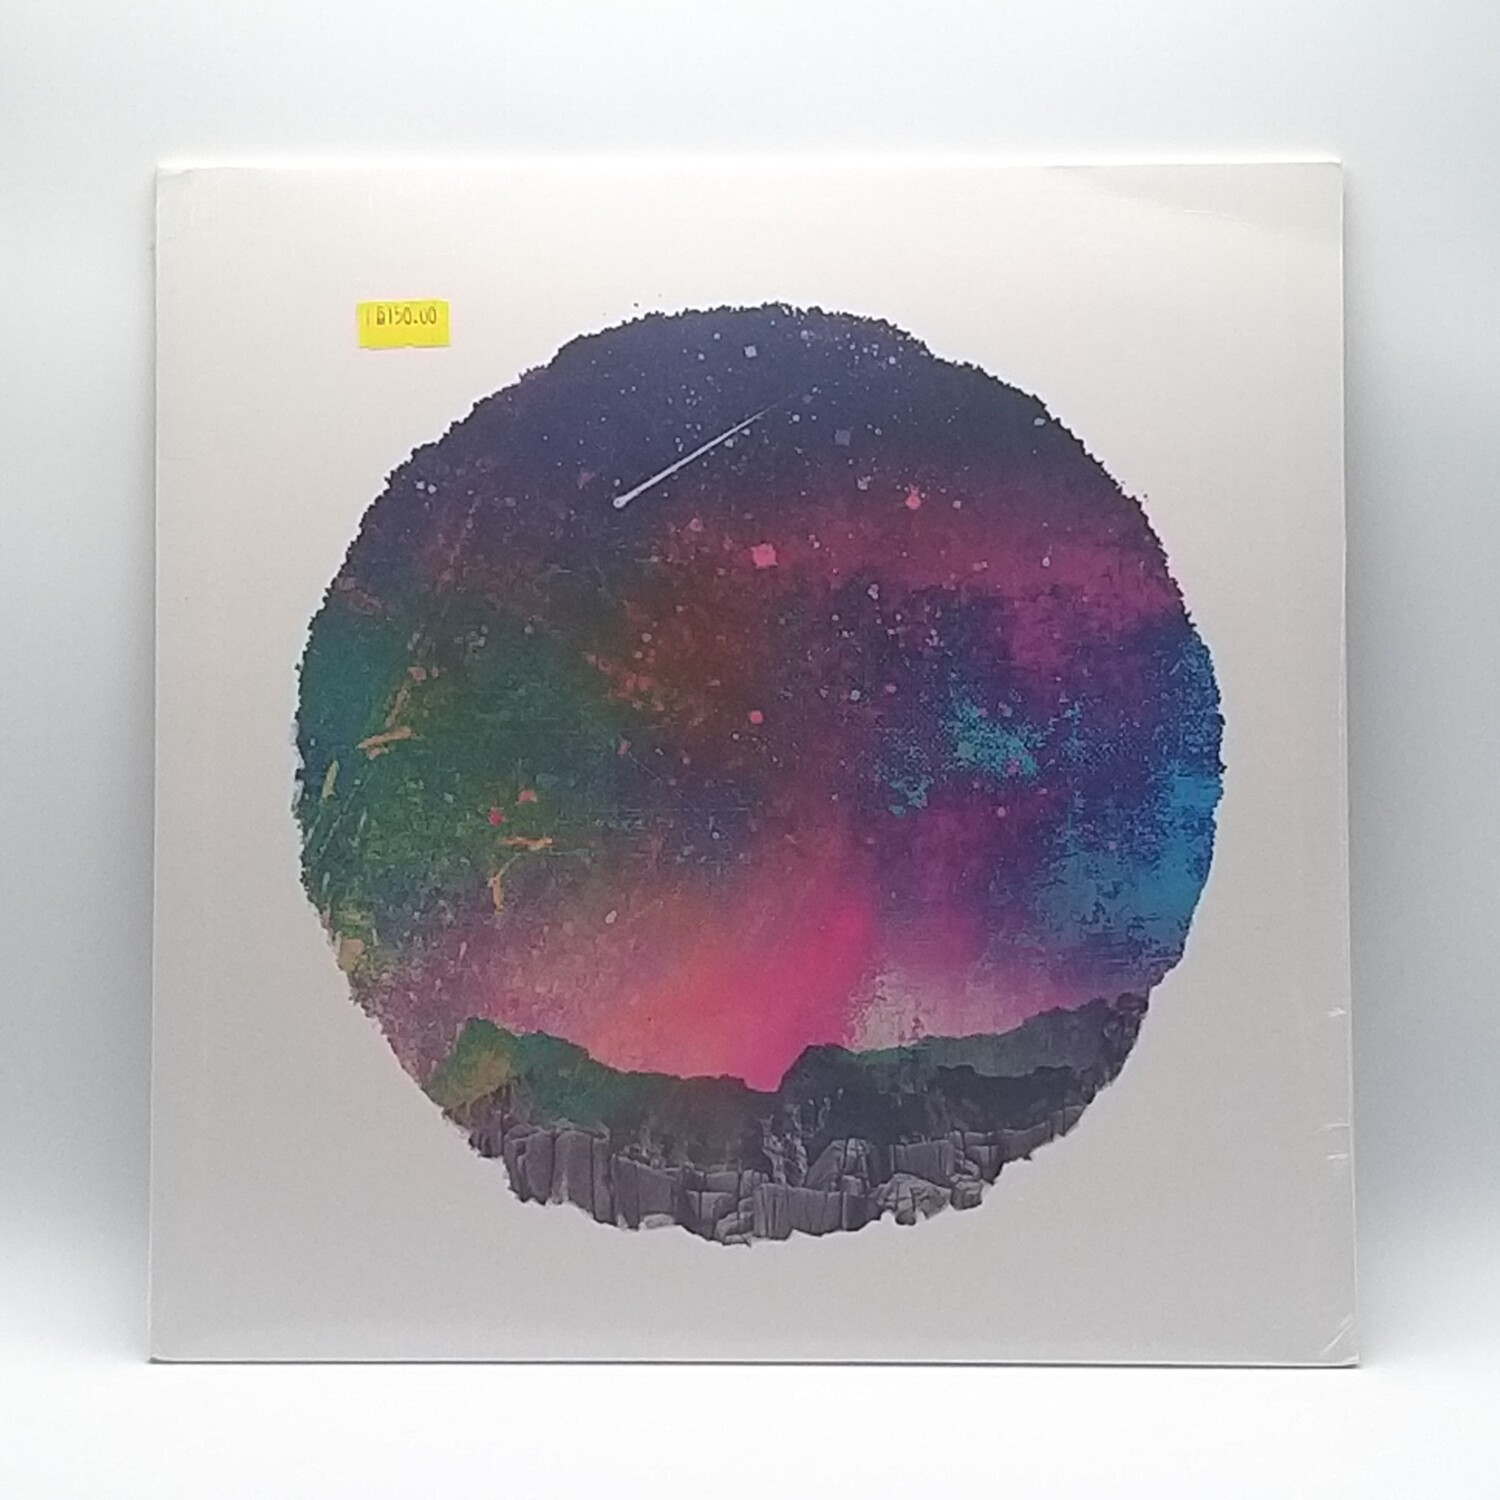 KHRUANGBIN -THE UNIVERSE SMILE UPON YOU- LP